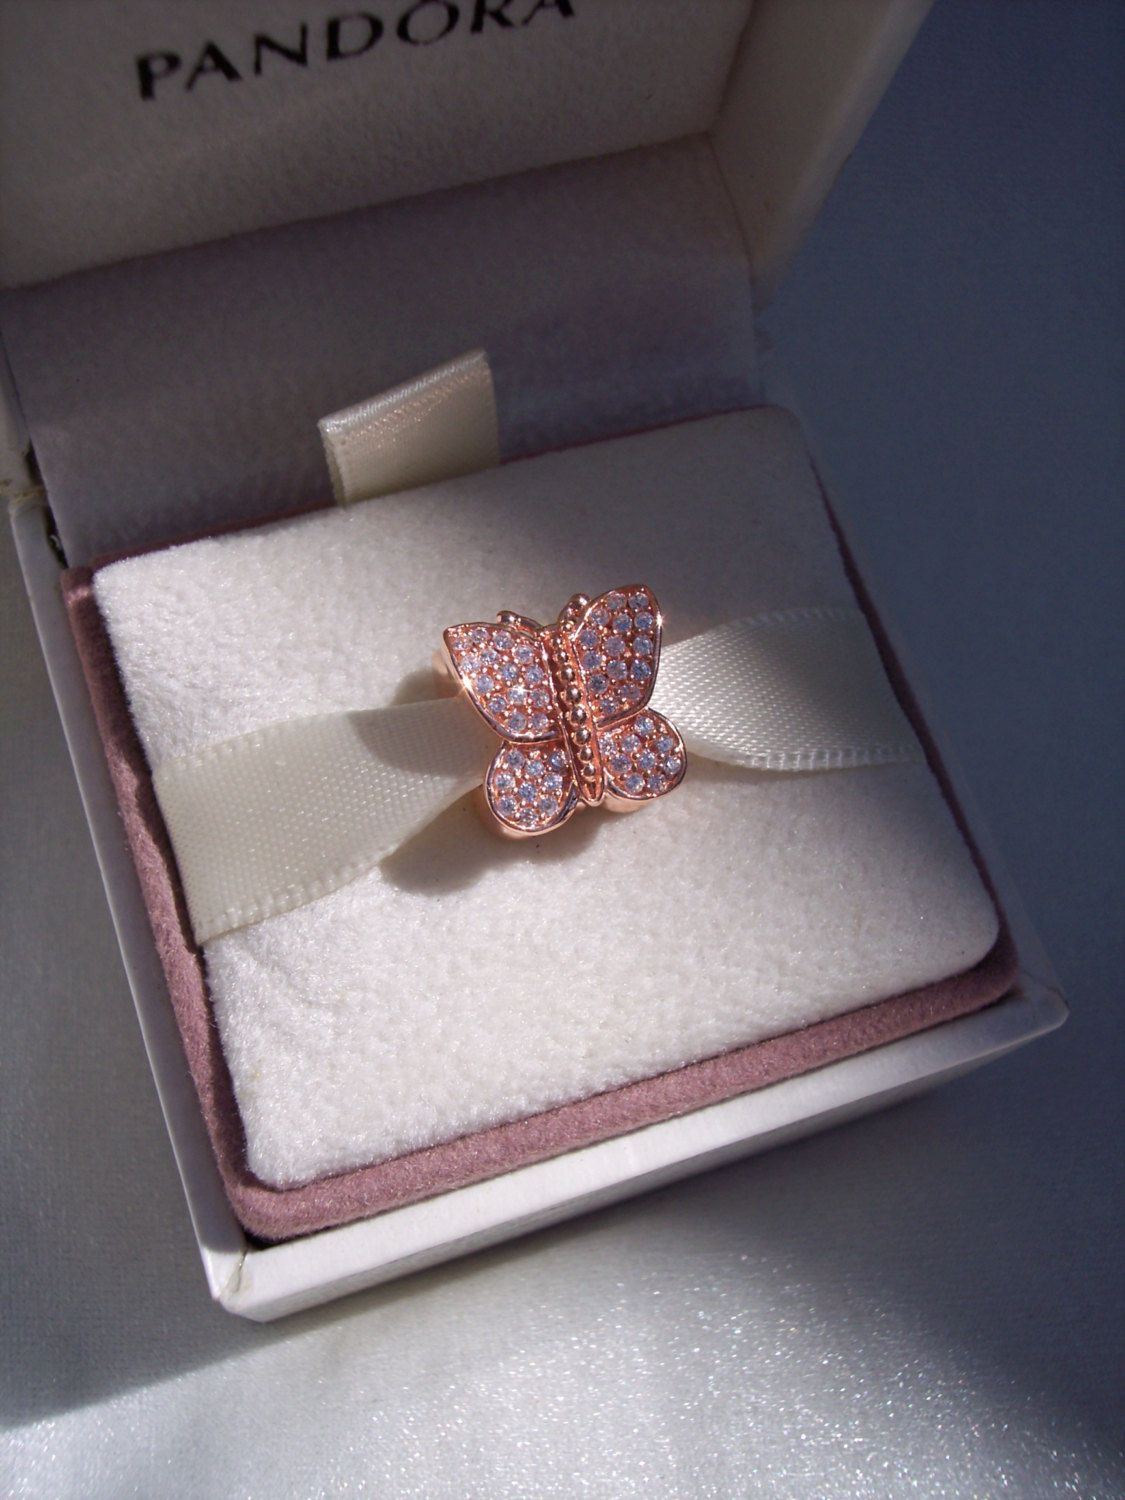 ef04689458 Pandora Sparkling Butterfly Rose High Fashion Rose Gold Collection Designer  Bracelet Glam Charm FREE SHIPPING Gift Box Sold Separately by JEWELSELAGANT  on ...